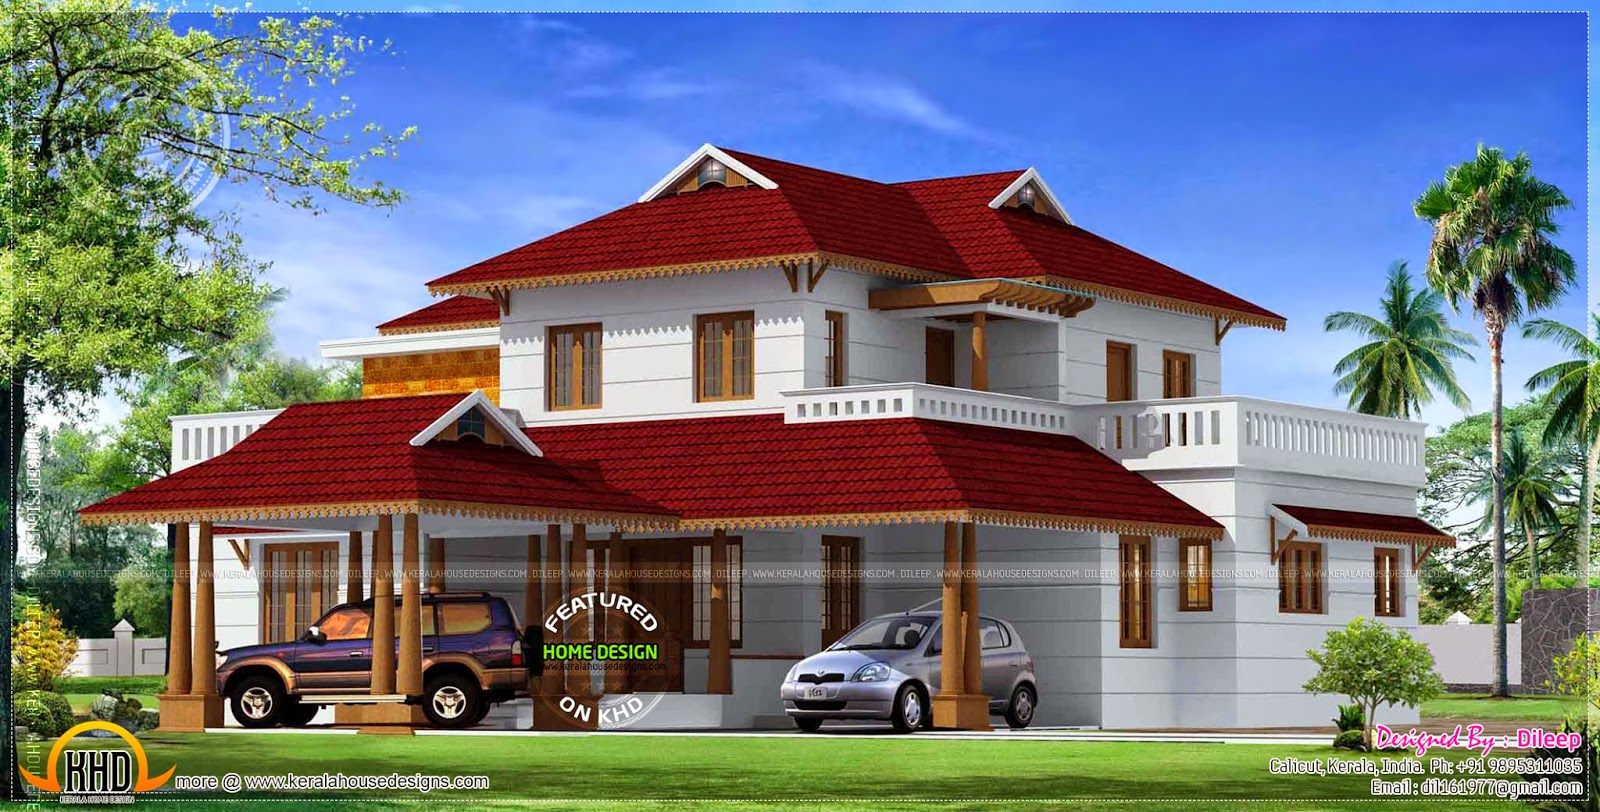 House traditional kerala style kerala home design and for Kerala traditional home plans with photos